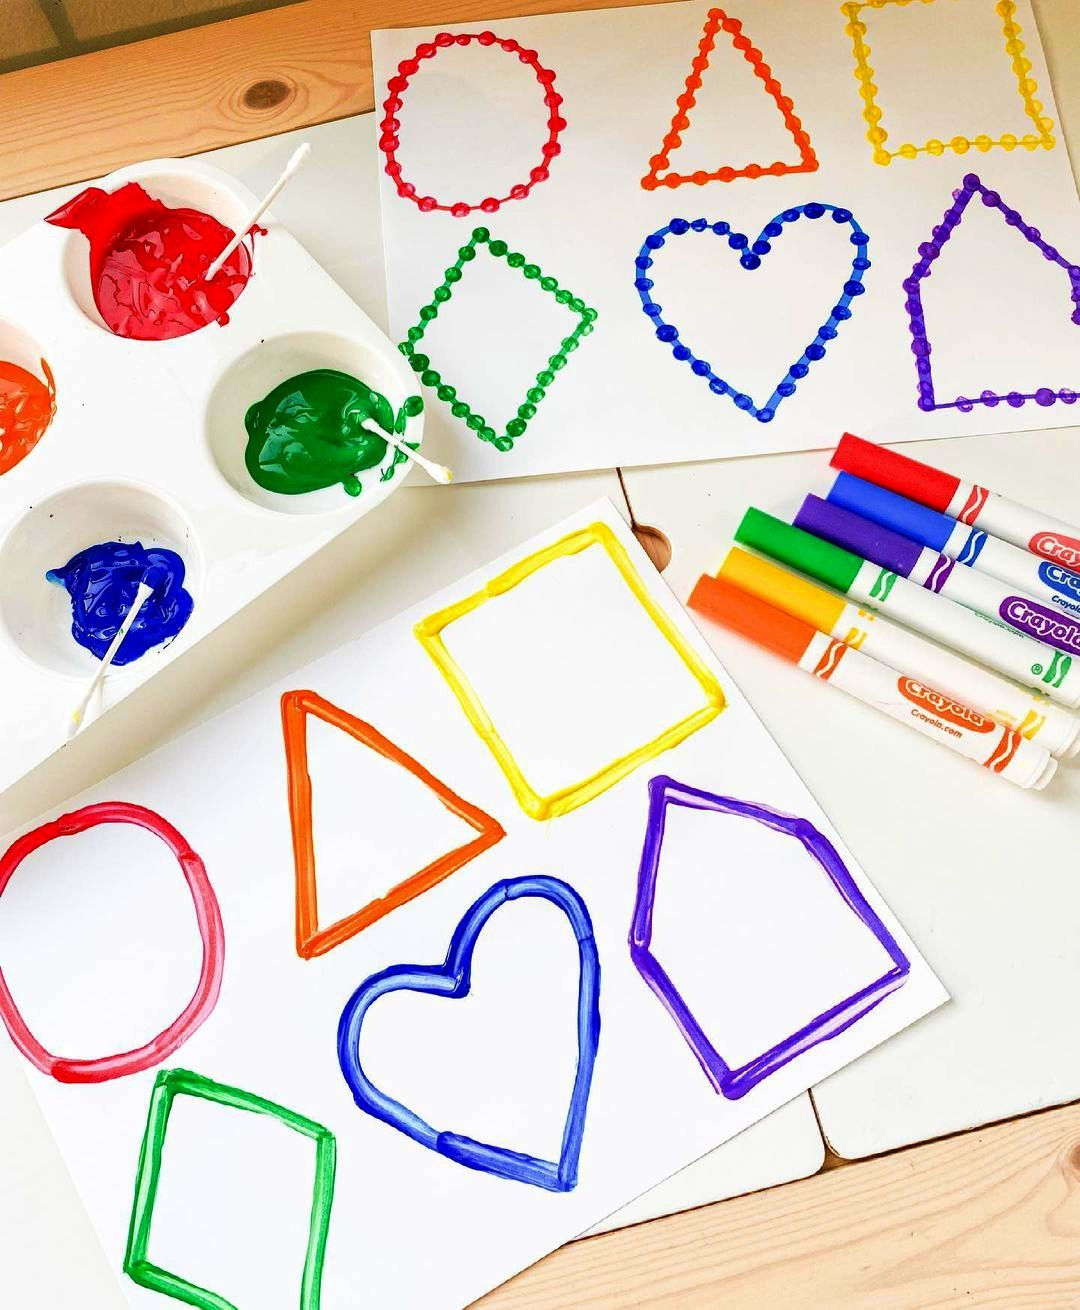 simplest arts and crafts projects is taking out a coloring book